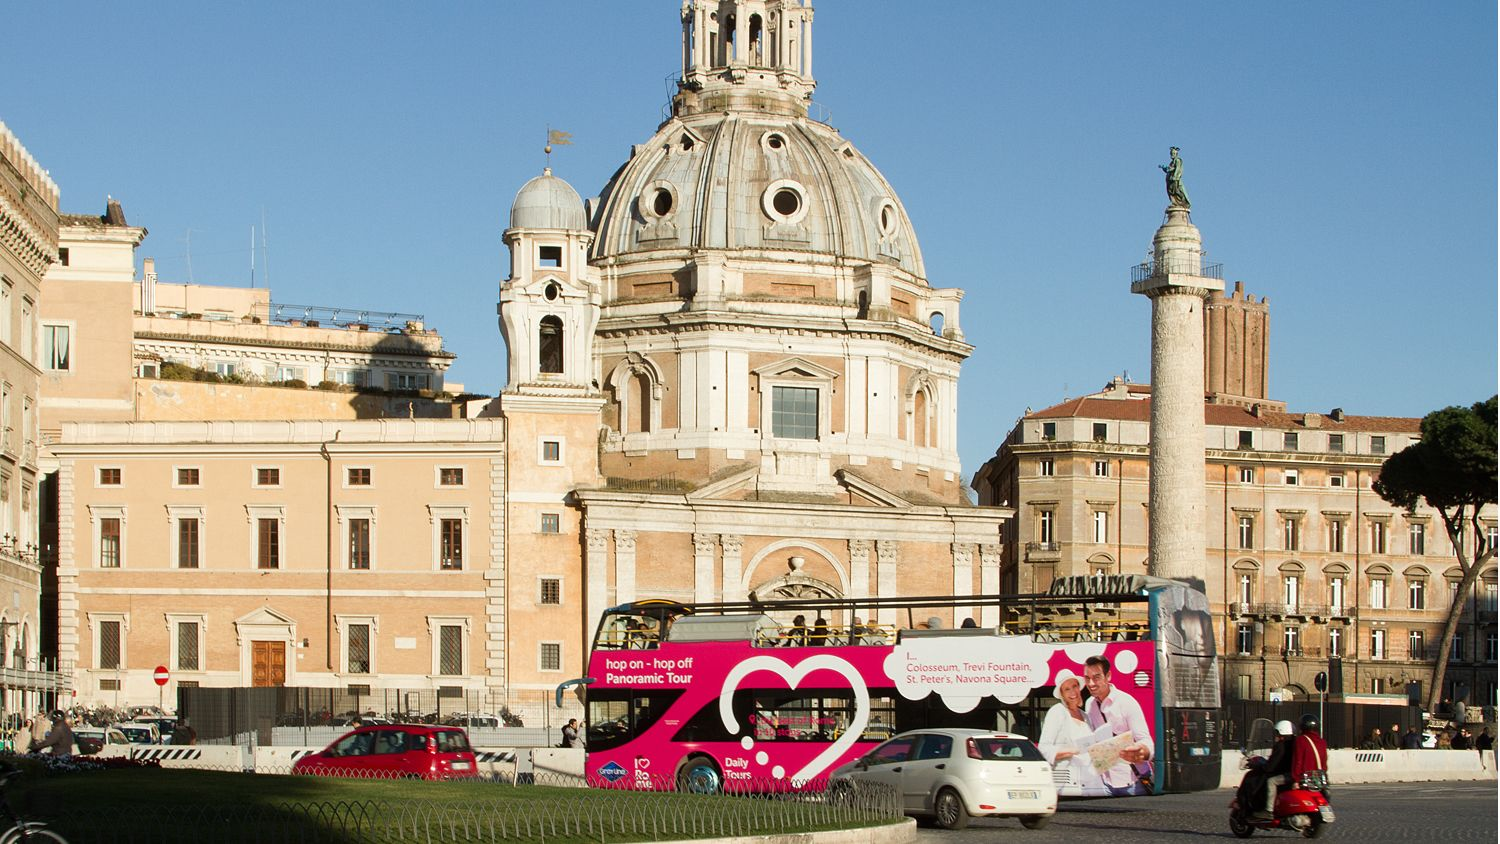 Photo of the tourbus circling the perimeter of the Vatican.